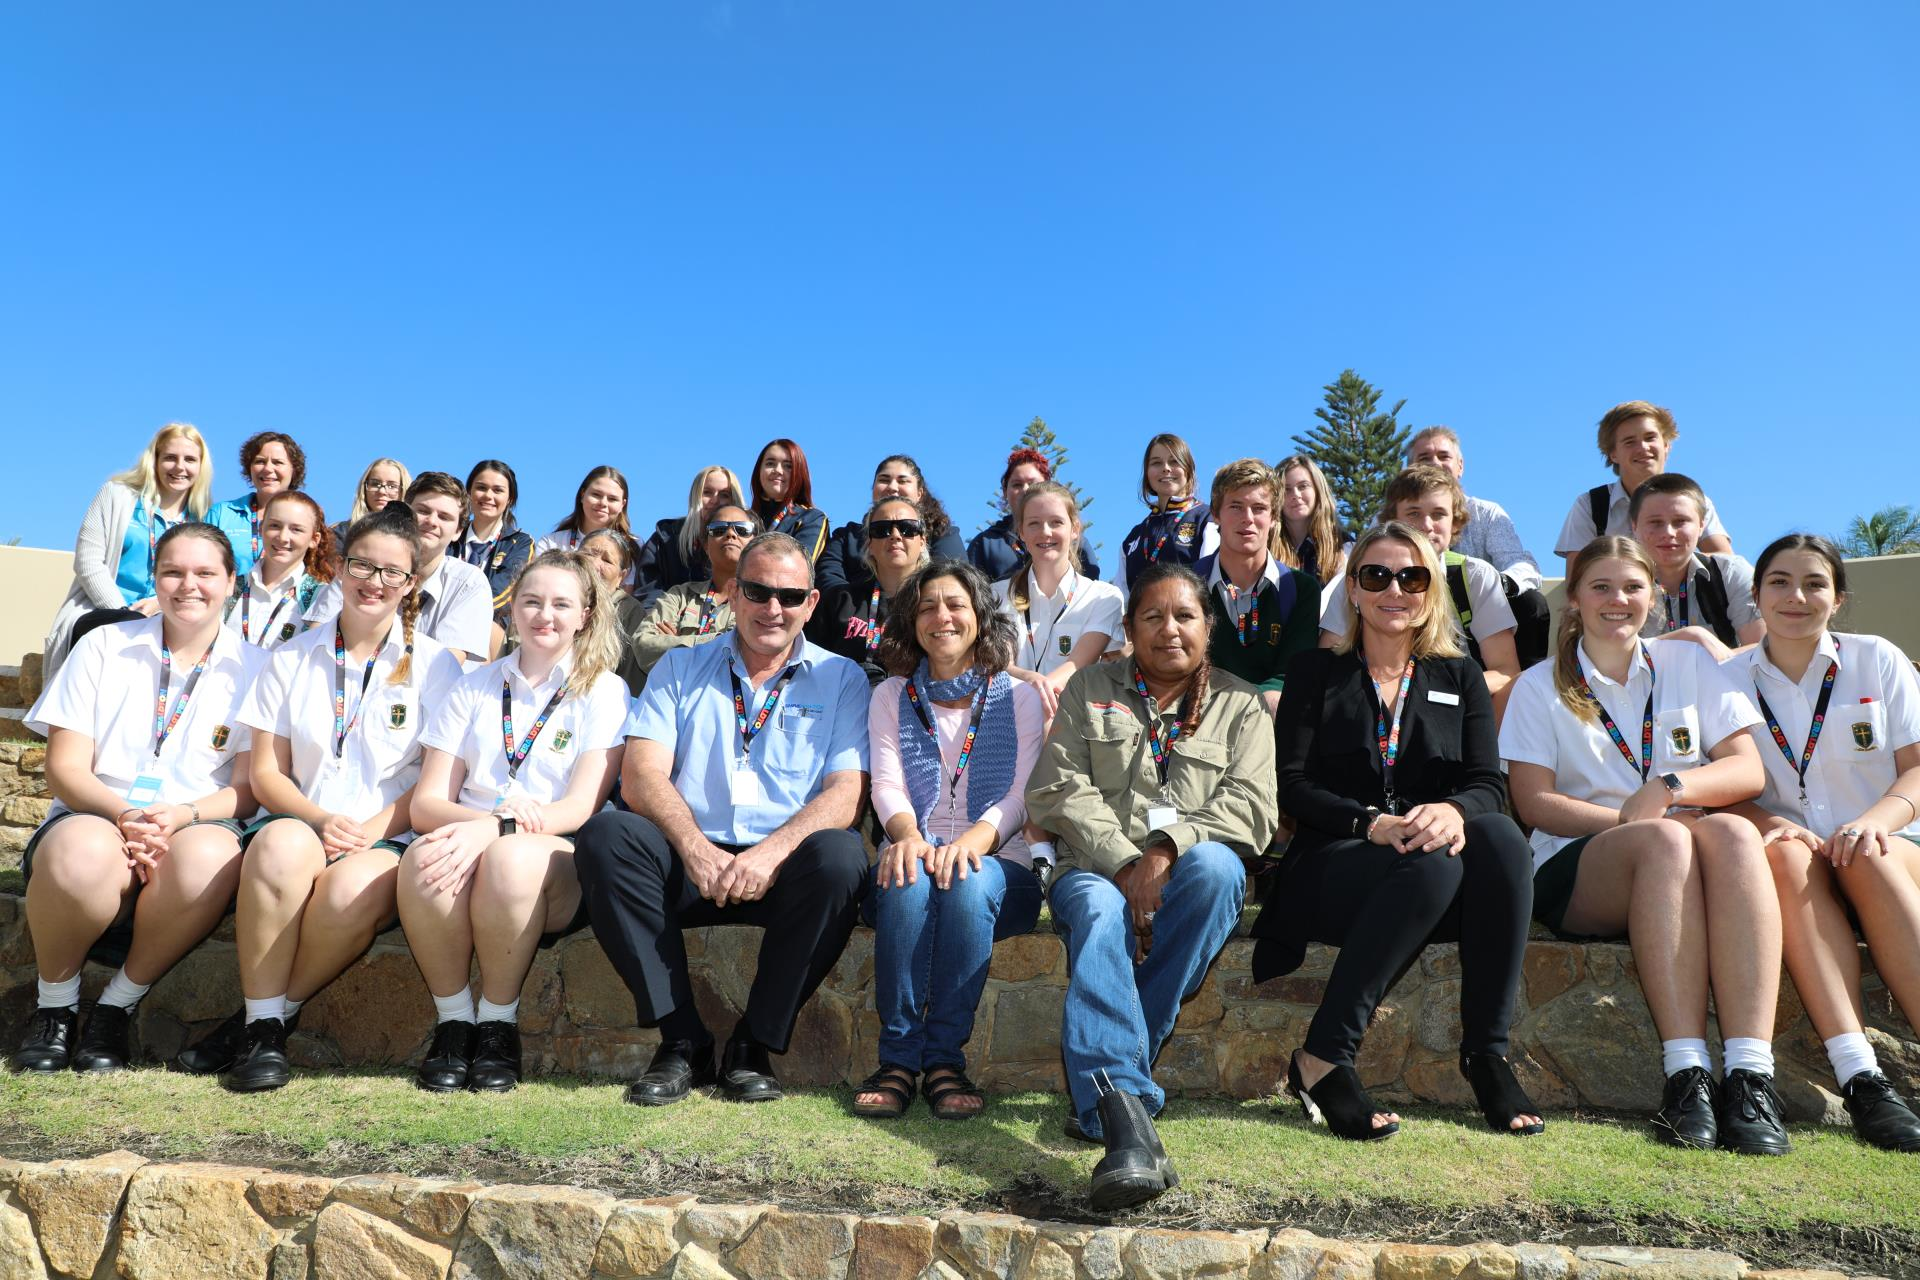 Event industry sponsors John Gooch from Shine Aviation and Pia Boschetti from Latitude Gallery made it possible for Tourism students from Geraldton Senior College, Central West Tafe and Nagle Catholic College to attend the event